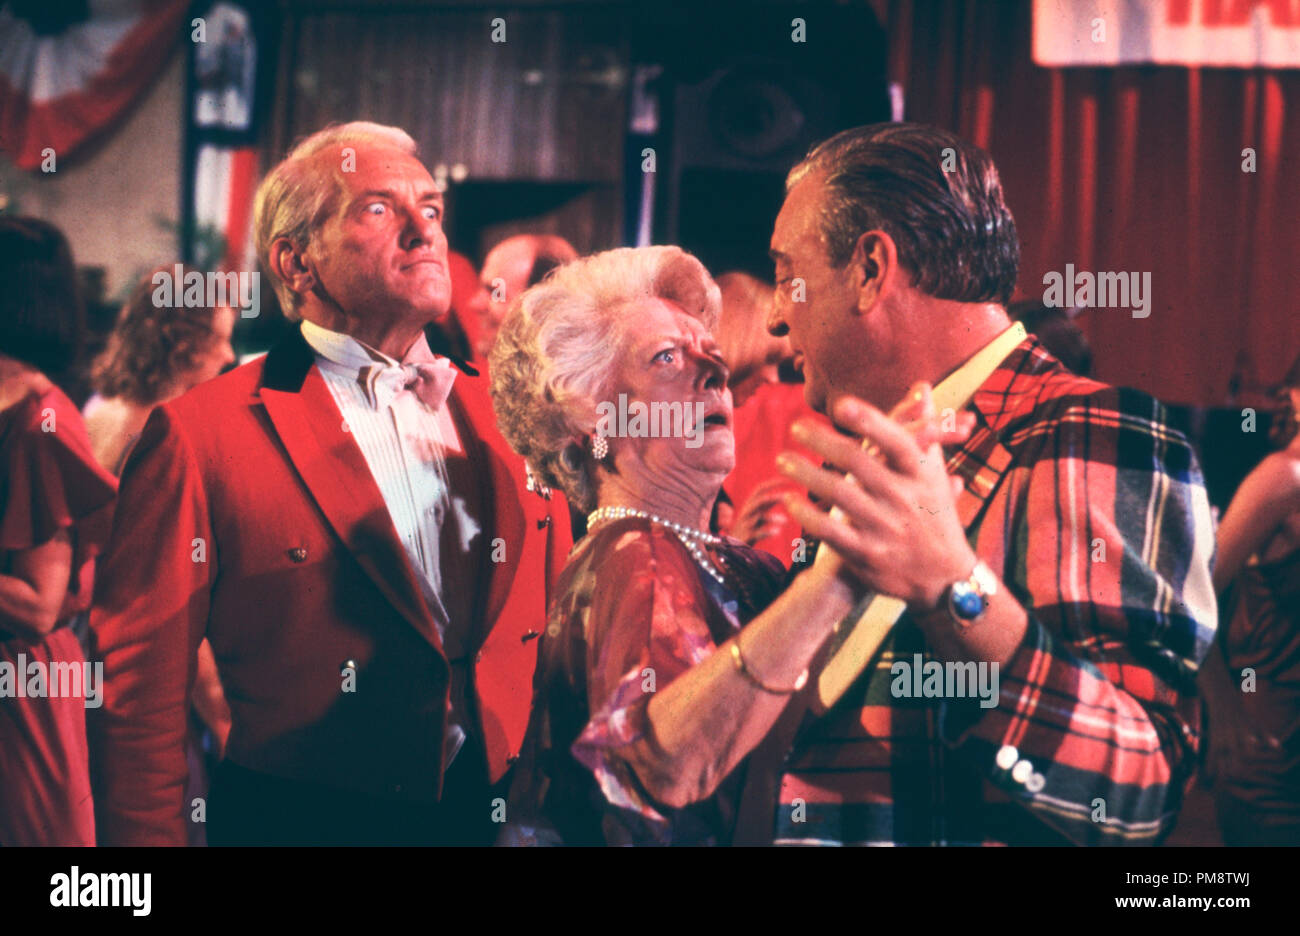 Studio Publicity Still from 'Caddyshack' Ted Knight, Lois Kibbee, Rodney Dangerfield © 1980 Orion  All Rights Reserved   File Reference # 31715286THA  For Editorial Use Only - Stock Image